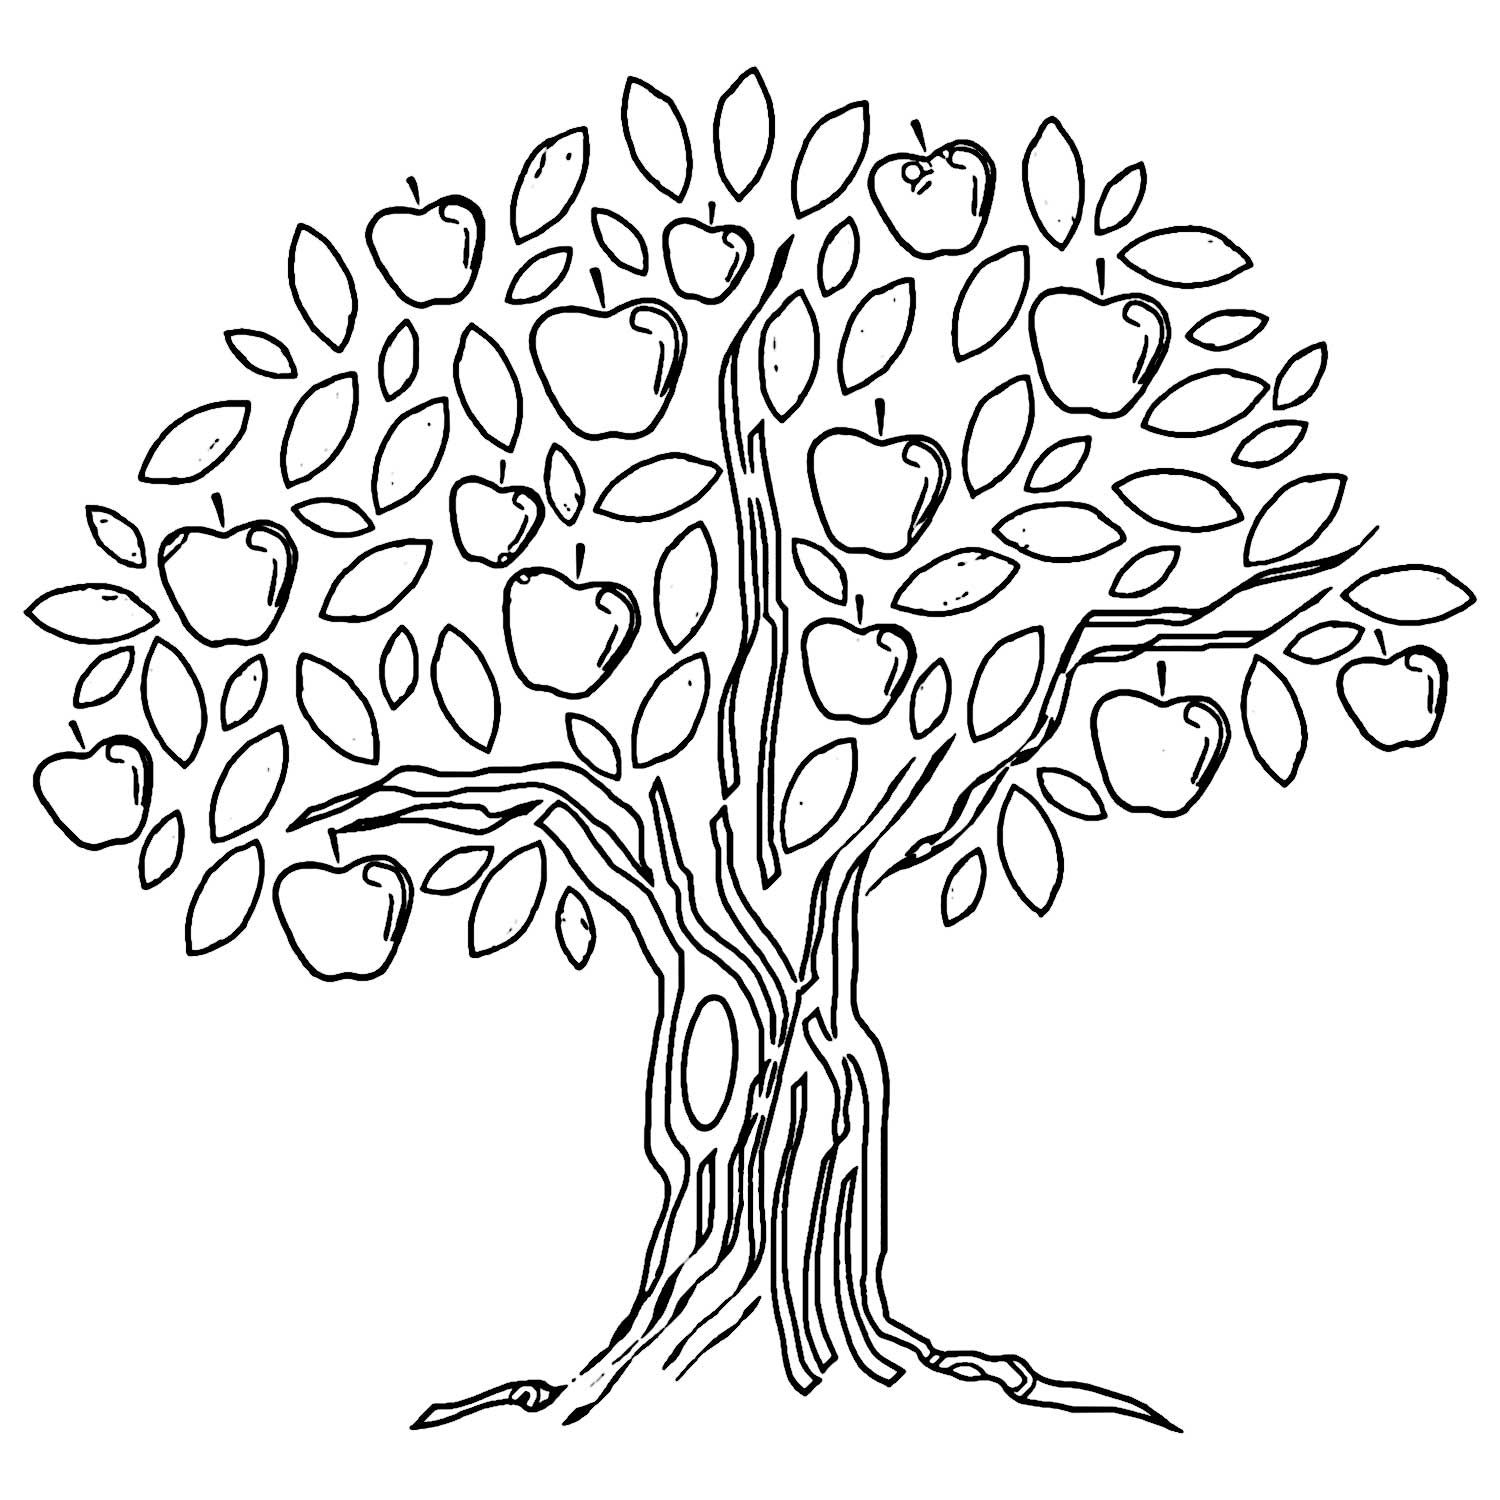 Apple Tree Coloring Page Wecoloring Tree Coloring Page Apple Coloring Pages Drawing Apple